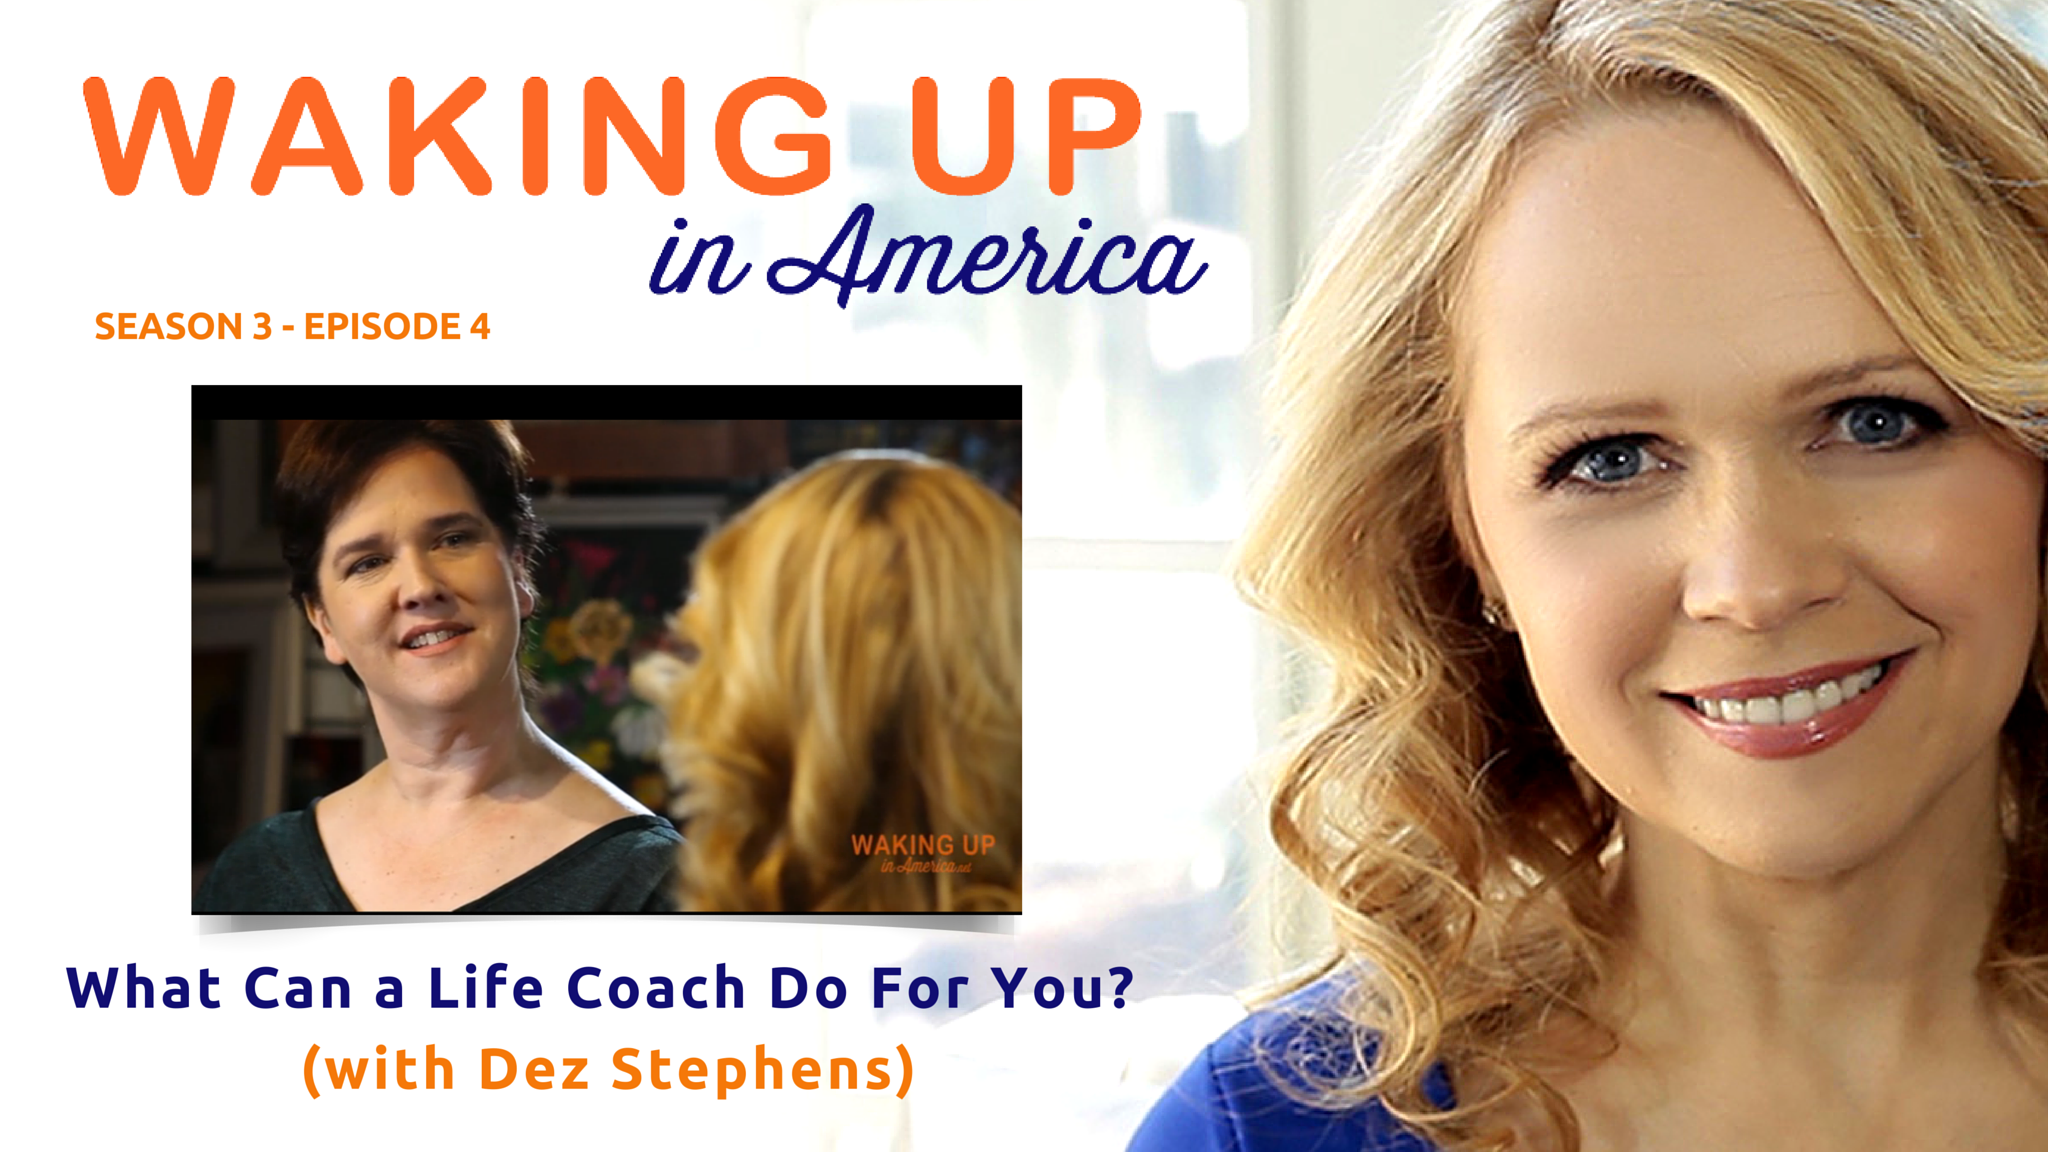 Dez Stephens on Life Coaching